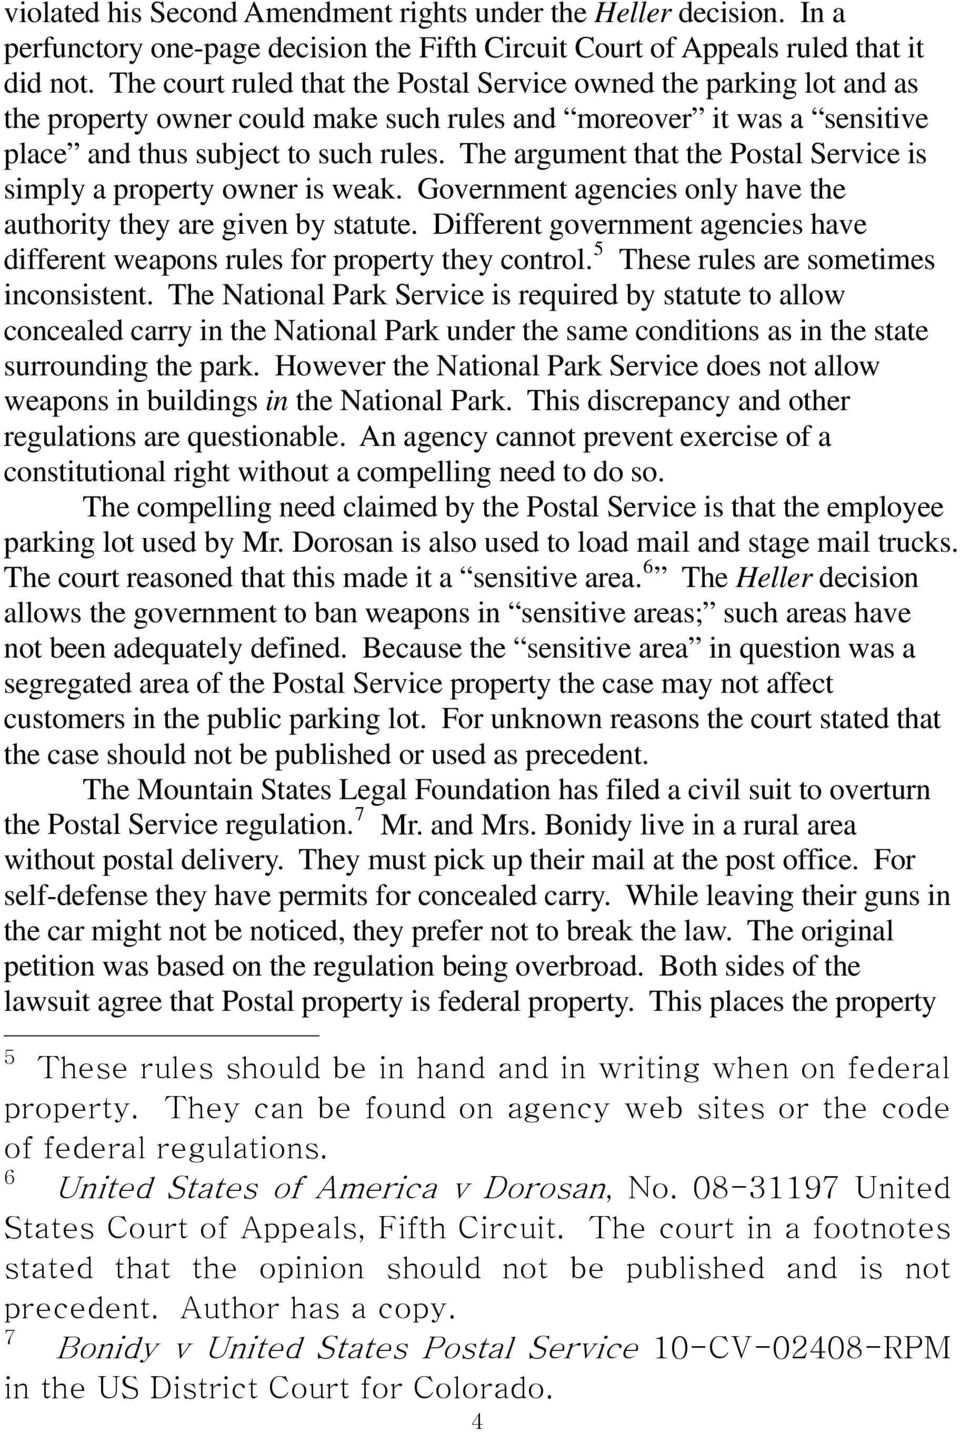 The argument that the Postal Service is simply a property owner is weak. Government agencies only have the authority they are given by statute.